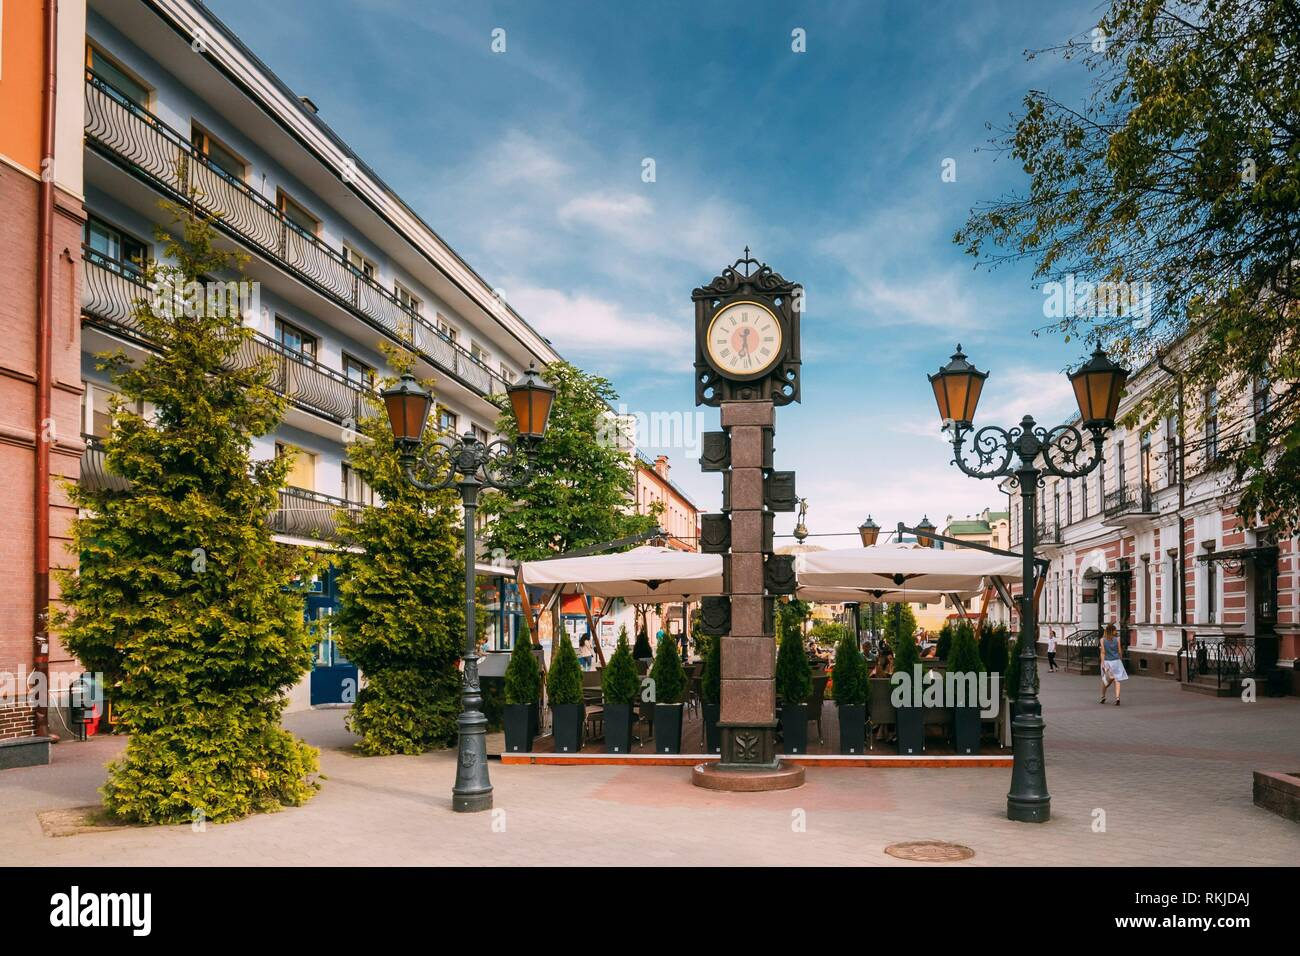 Brest, Belarus. Two-Sided Clock In Old-Fashioned Decoration With Arms Of City Of Different Times In Form Of A Six-Meter Bronze Monument On Pedestrian - Stock Image